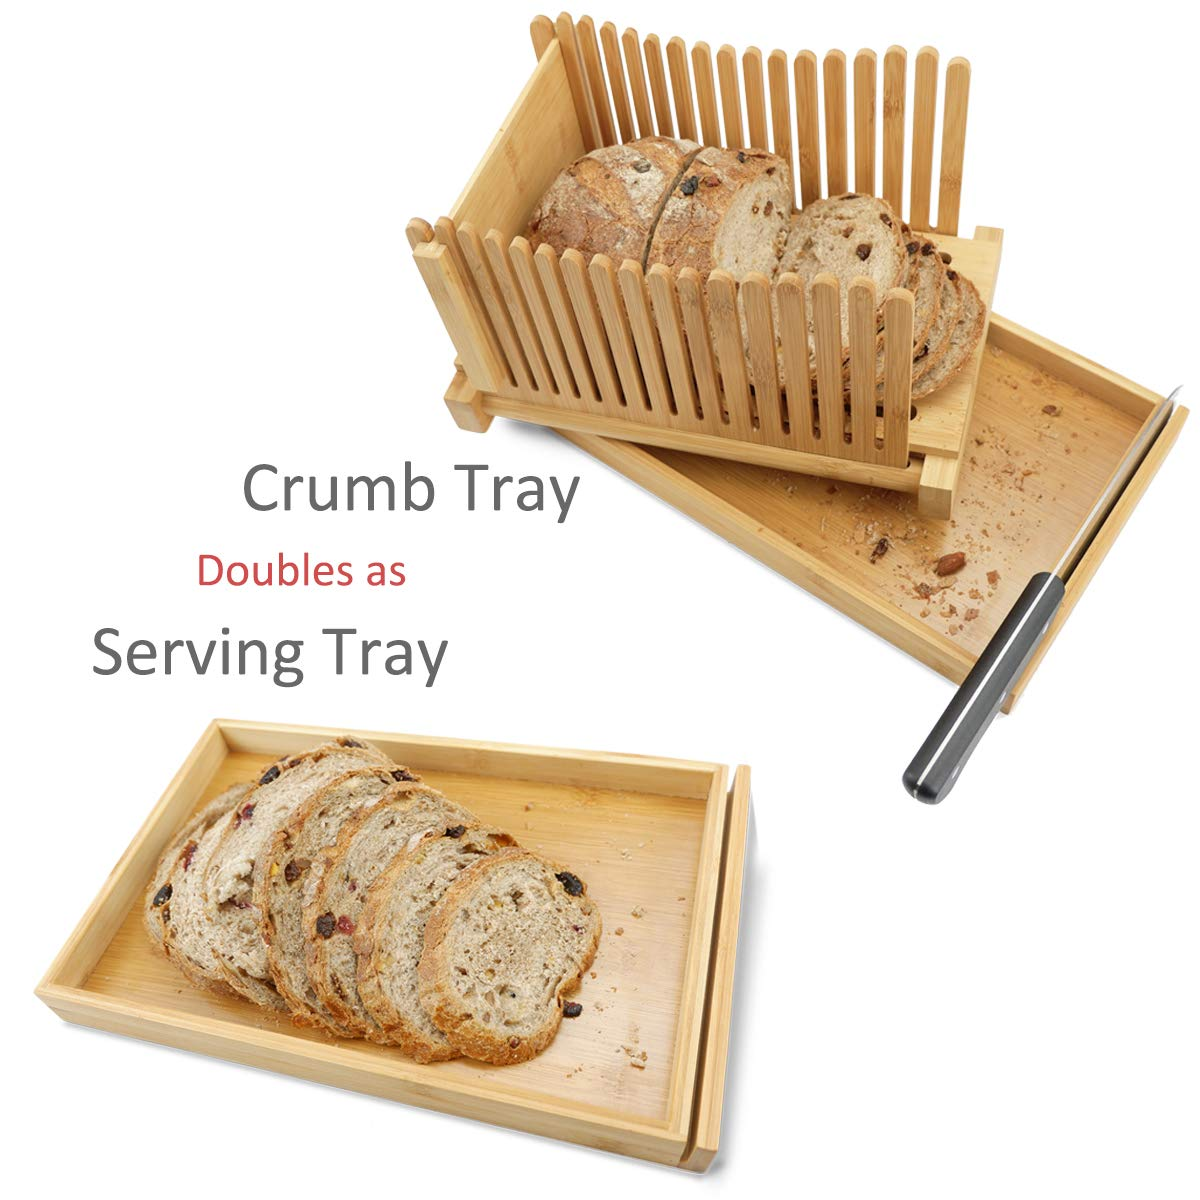 MAGIGO Nature Bamboo Foldable Bread Slicer with Crumb Catcher Tray, Bread Slicing Guide and Knife Rest for Homemade Bread & Loaf Cakes, Thickness Adjustable, Contains 20 Bread Bags & 20 Twist Ties by MAGIGO (Image #4)